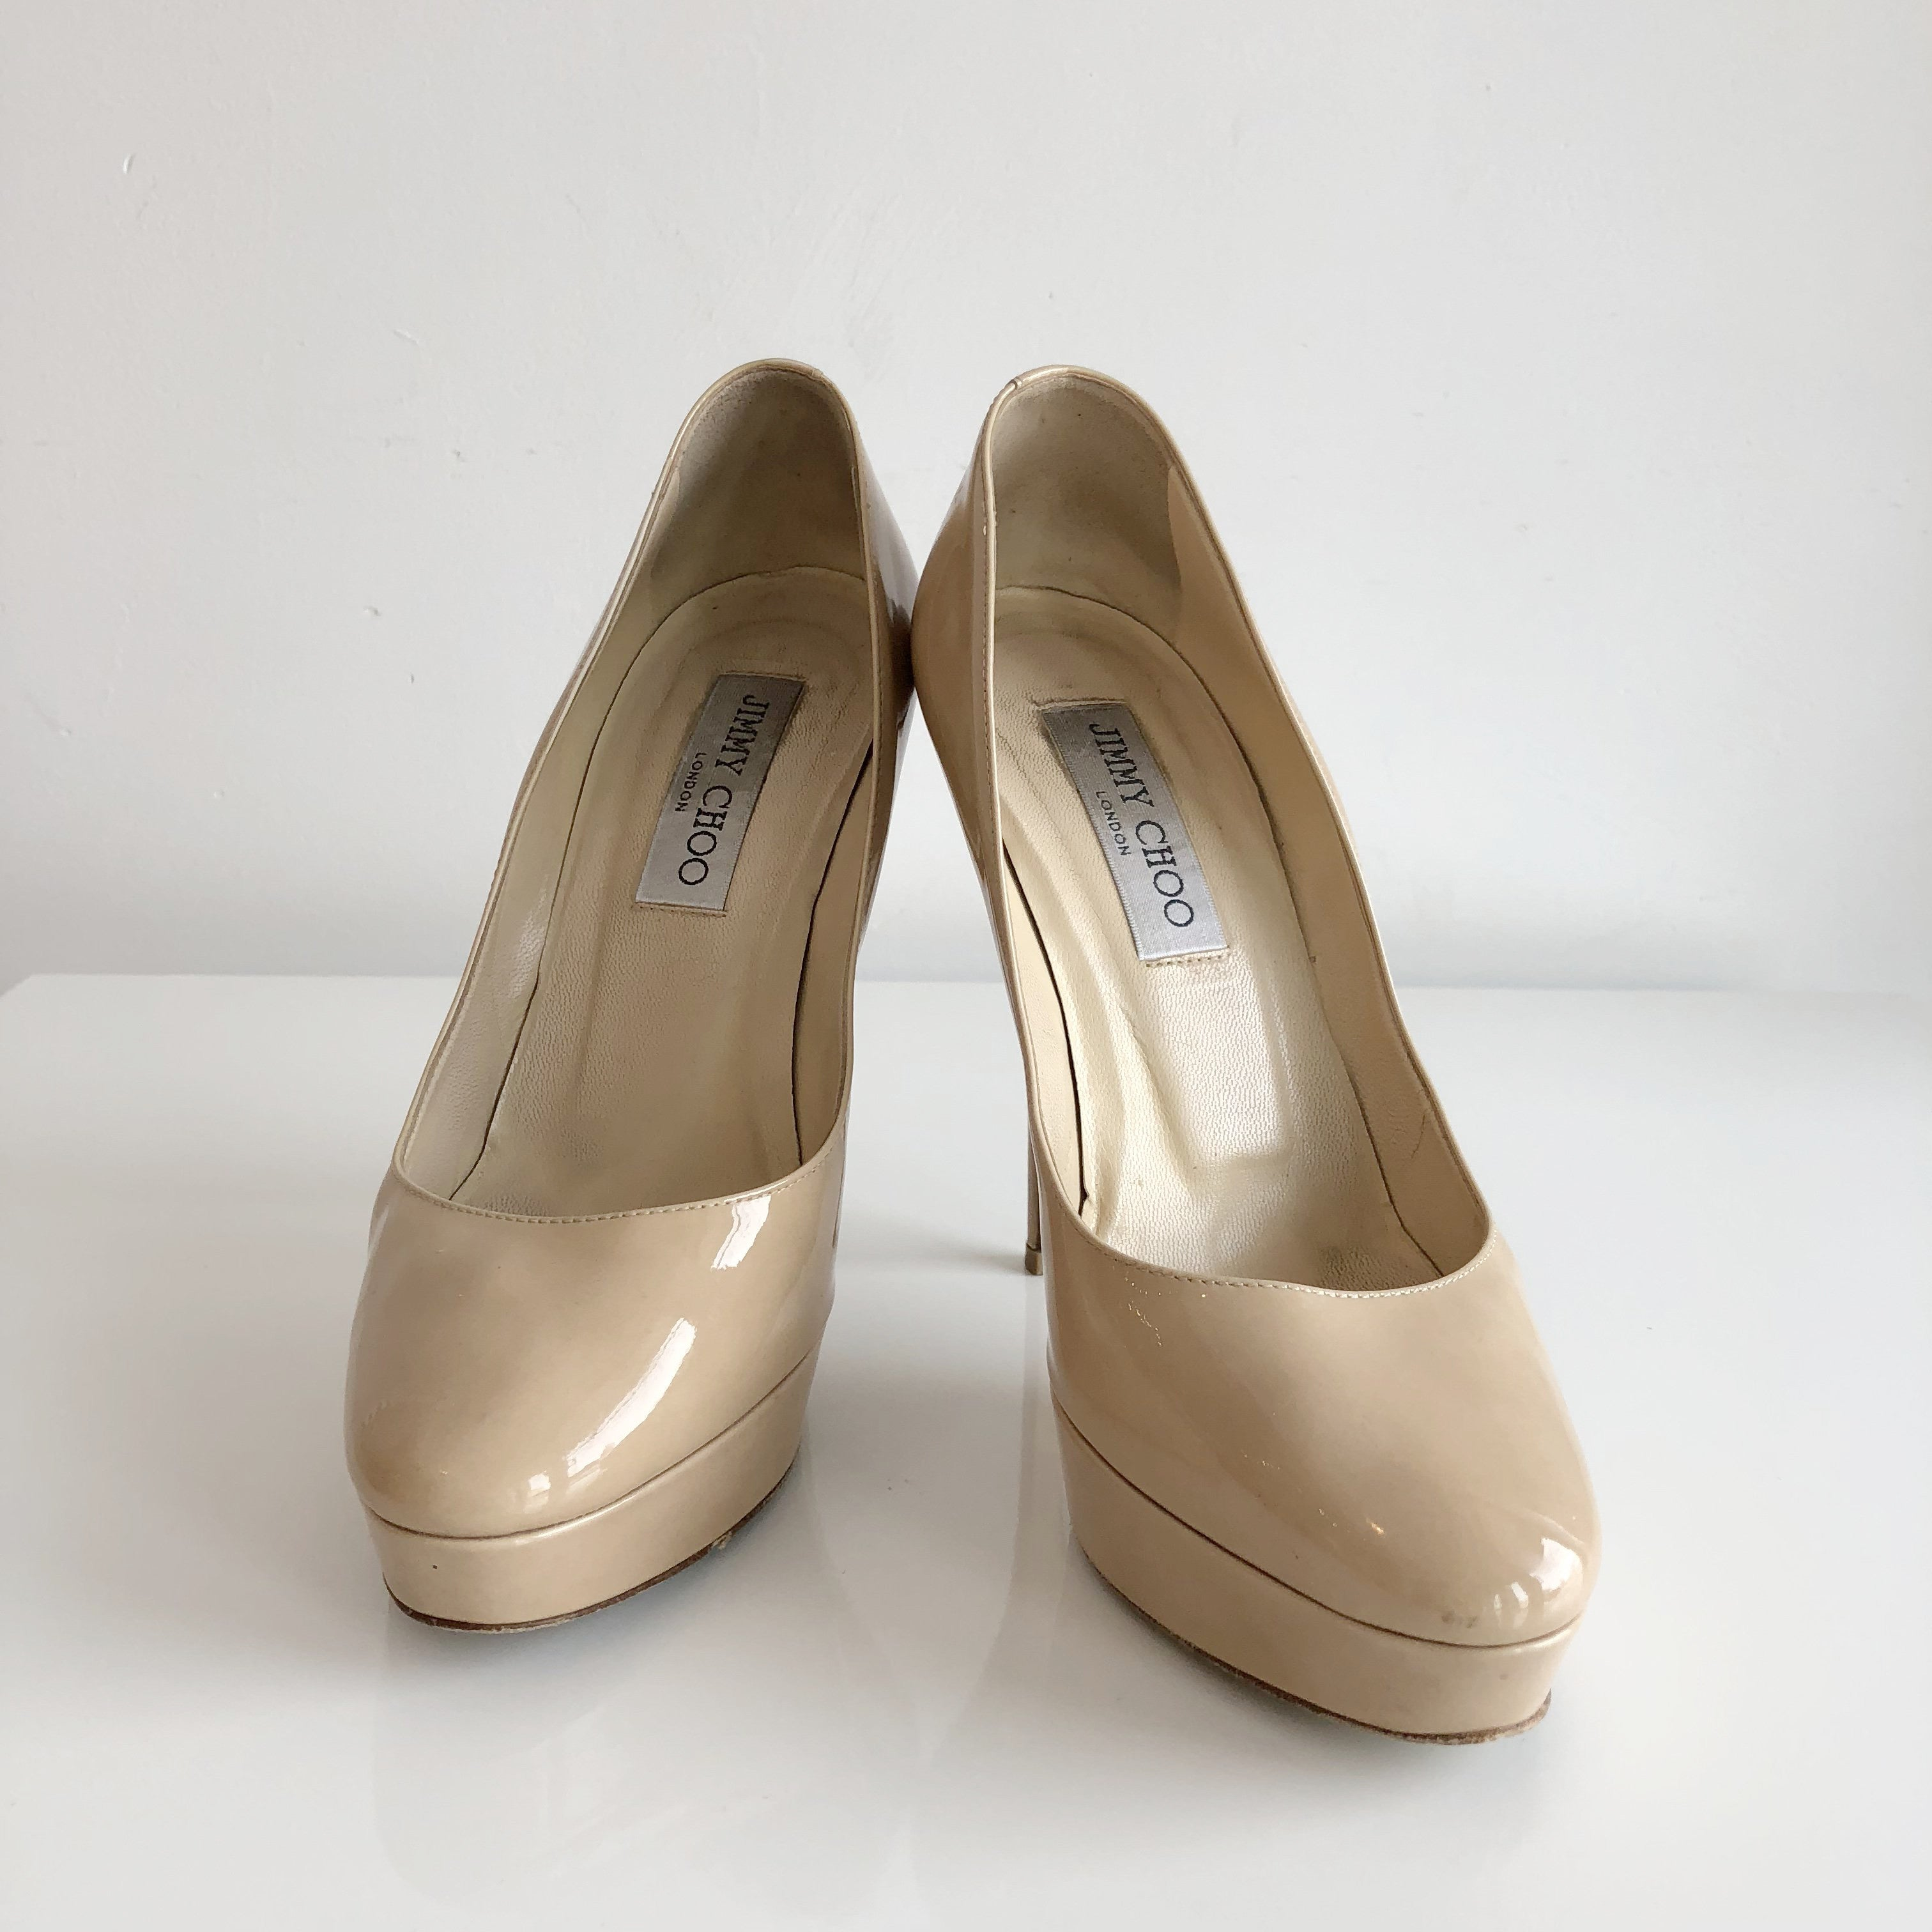 Authentic JIMMY CHOO Cosmic Nude Shoes Size 7